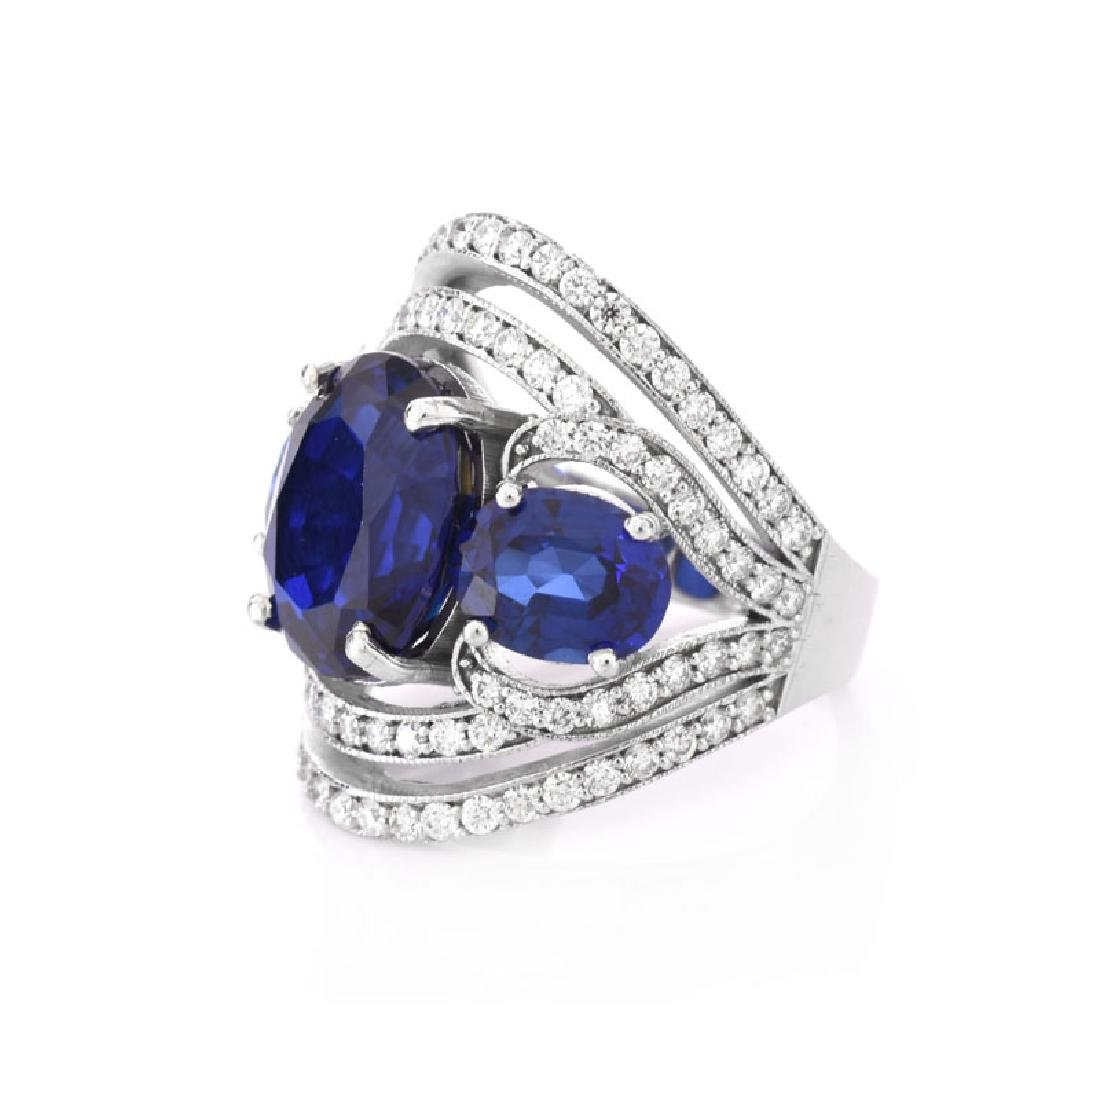 Approx. 10.30 Carat Oval Cut Synthetic Sapphire, 1.20 - 3